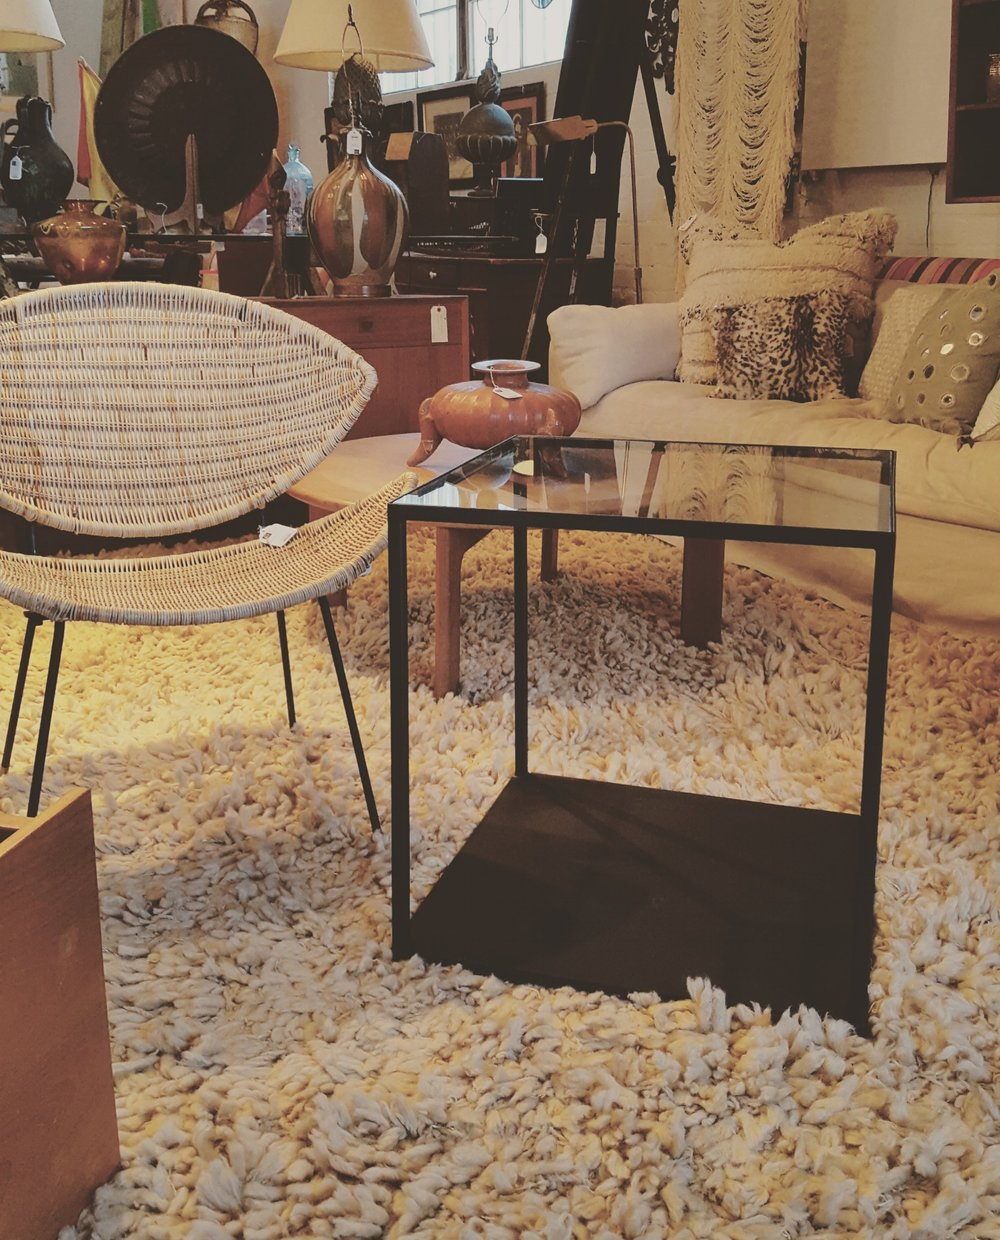 Estate Sale Co. Los Angeles - Shown in the picture, is a set of end tables made specifically for her location. Her store has some of the best inventory for your home, and they have sales also! Check out her store on Instagram @popuphome!Radweld Customs and Estate Sale Co. are currently designing and fabricating their first run of custom furniture pieces specifically for a new line that will be retailed through our website and their store front location.